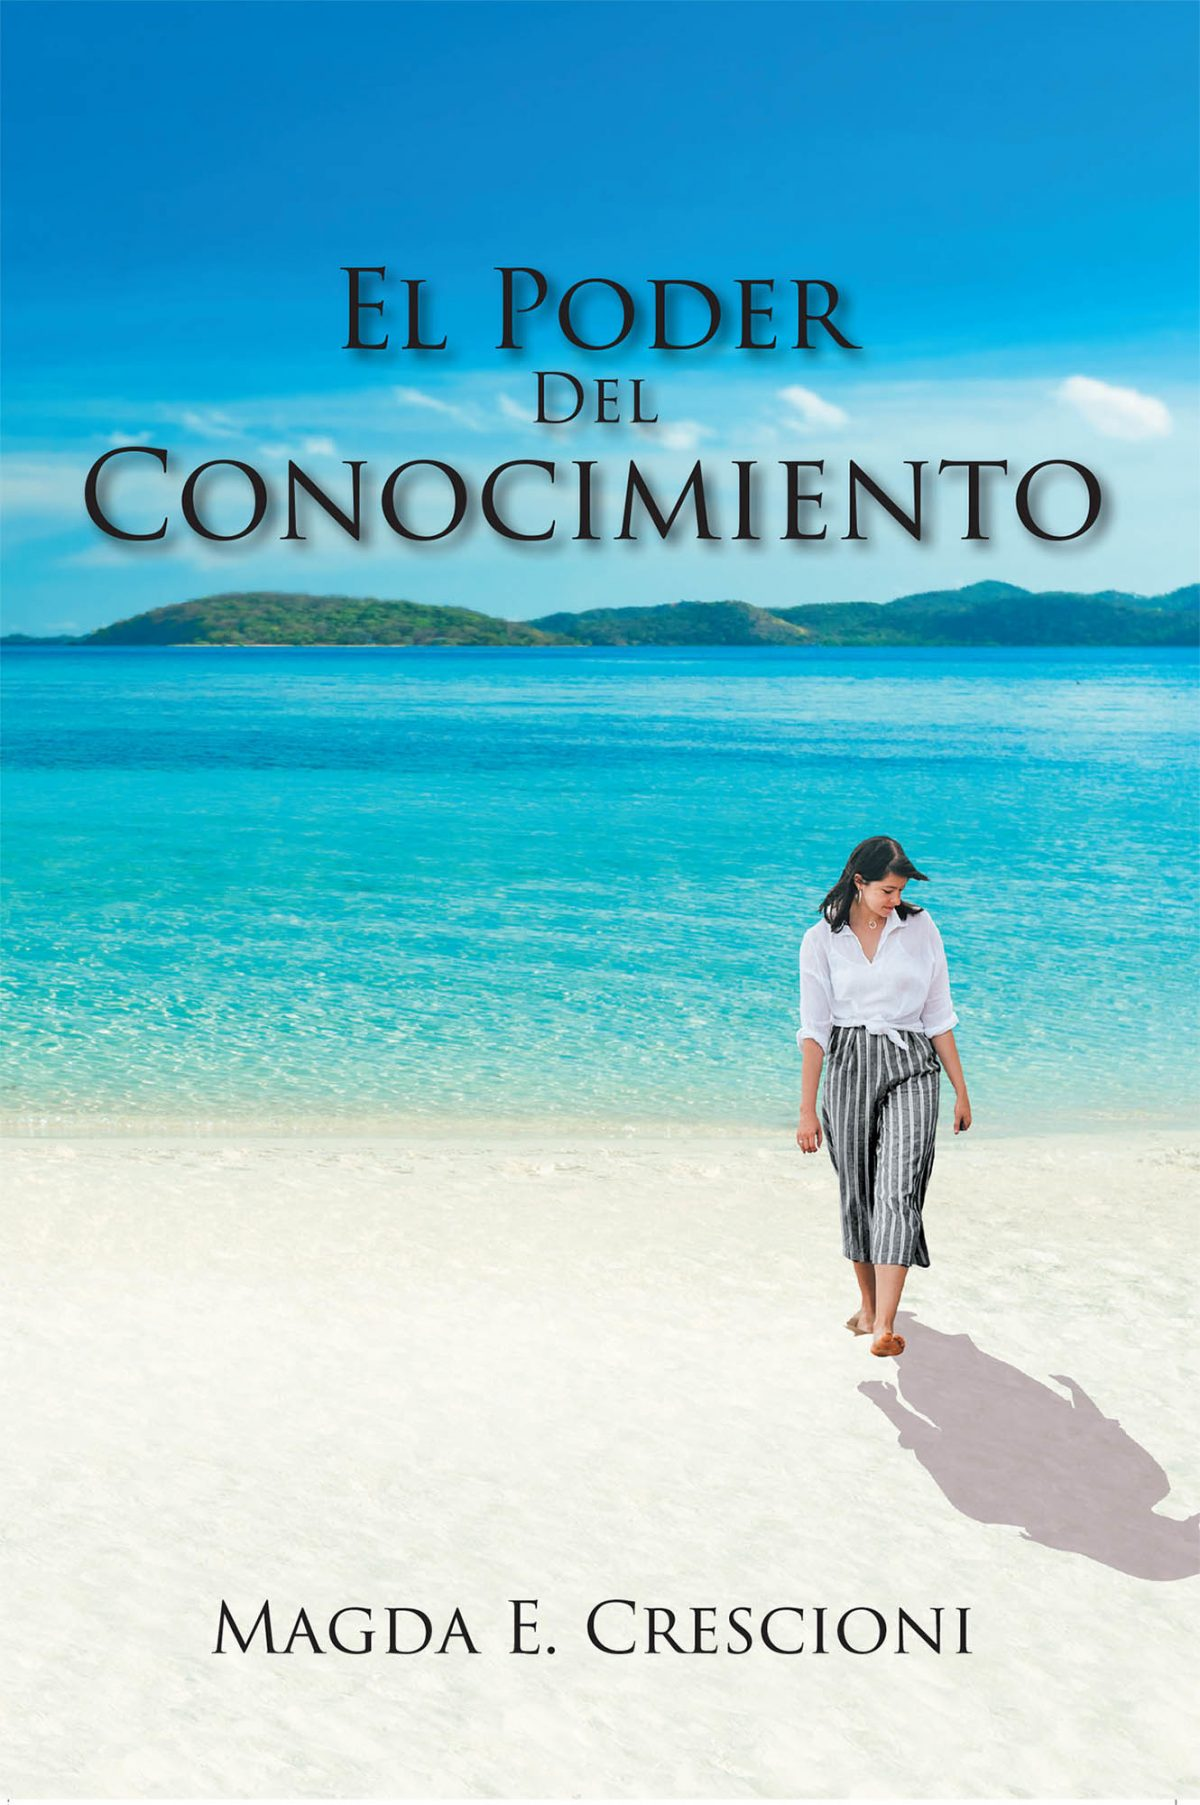 Magda E. Crescioni's New Book El Poder Del Conocimiento, An Enriching Tome Filled With Insights That Lead To Attaining Life's Purpose And Fulfillment